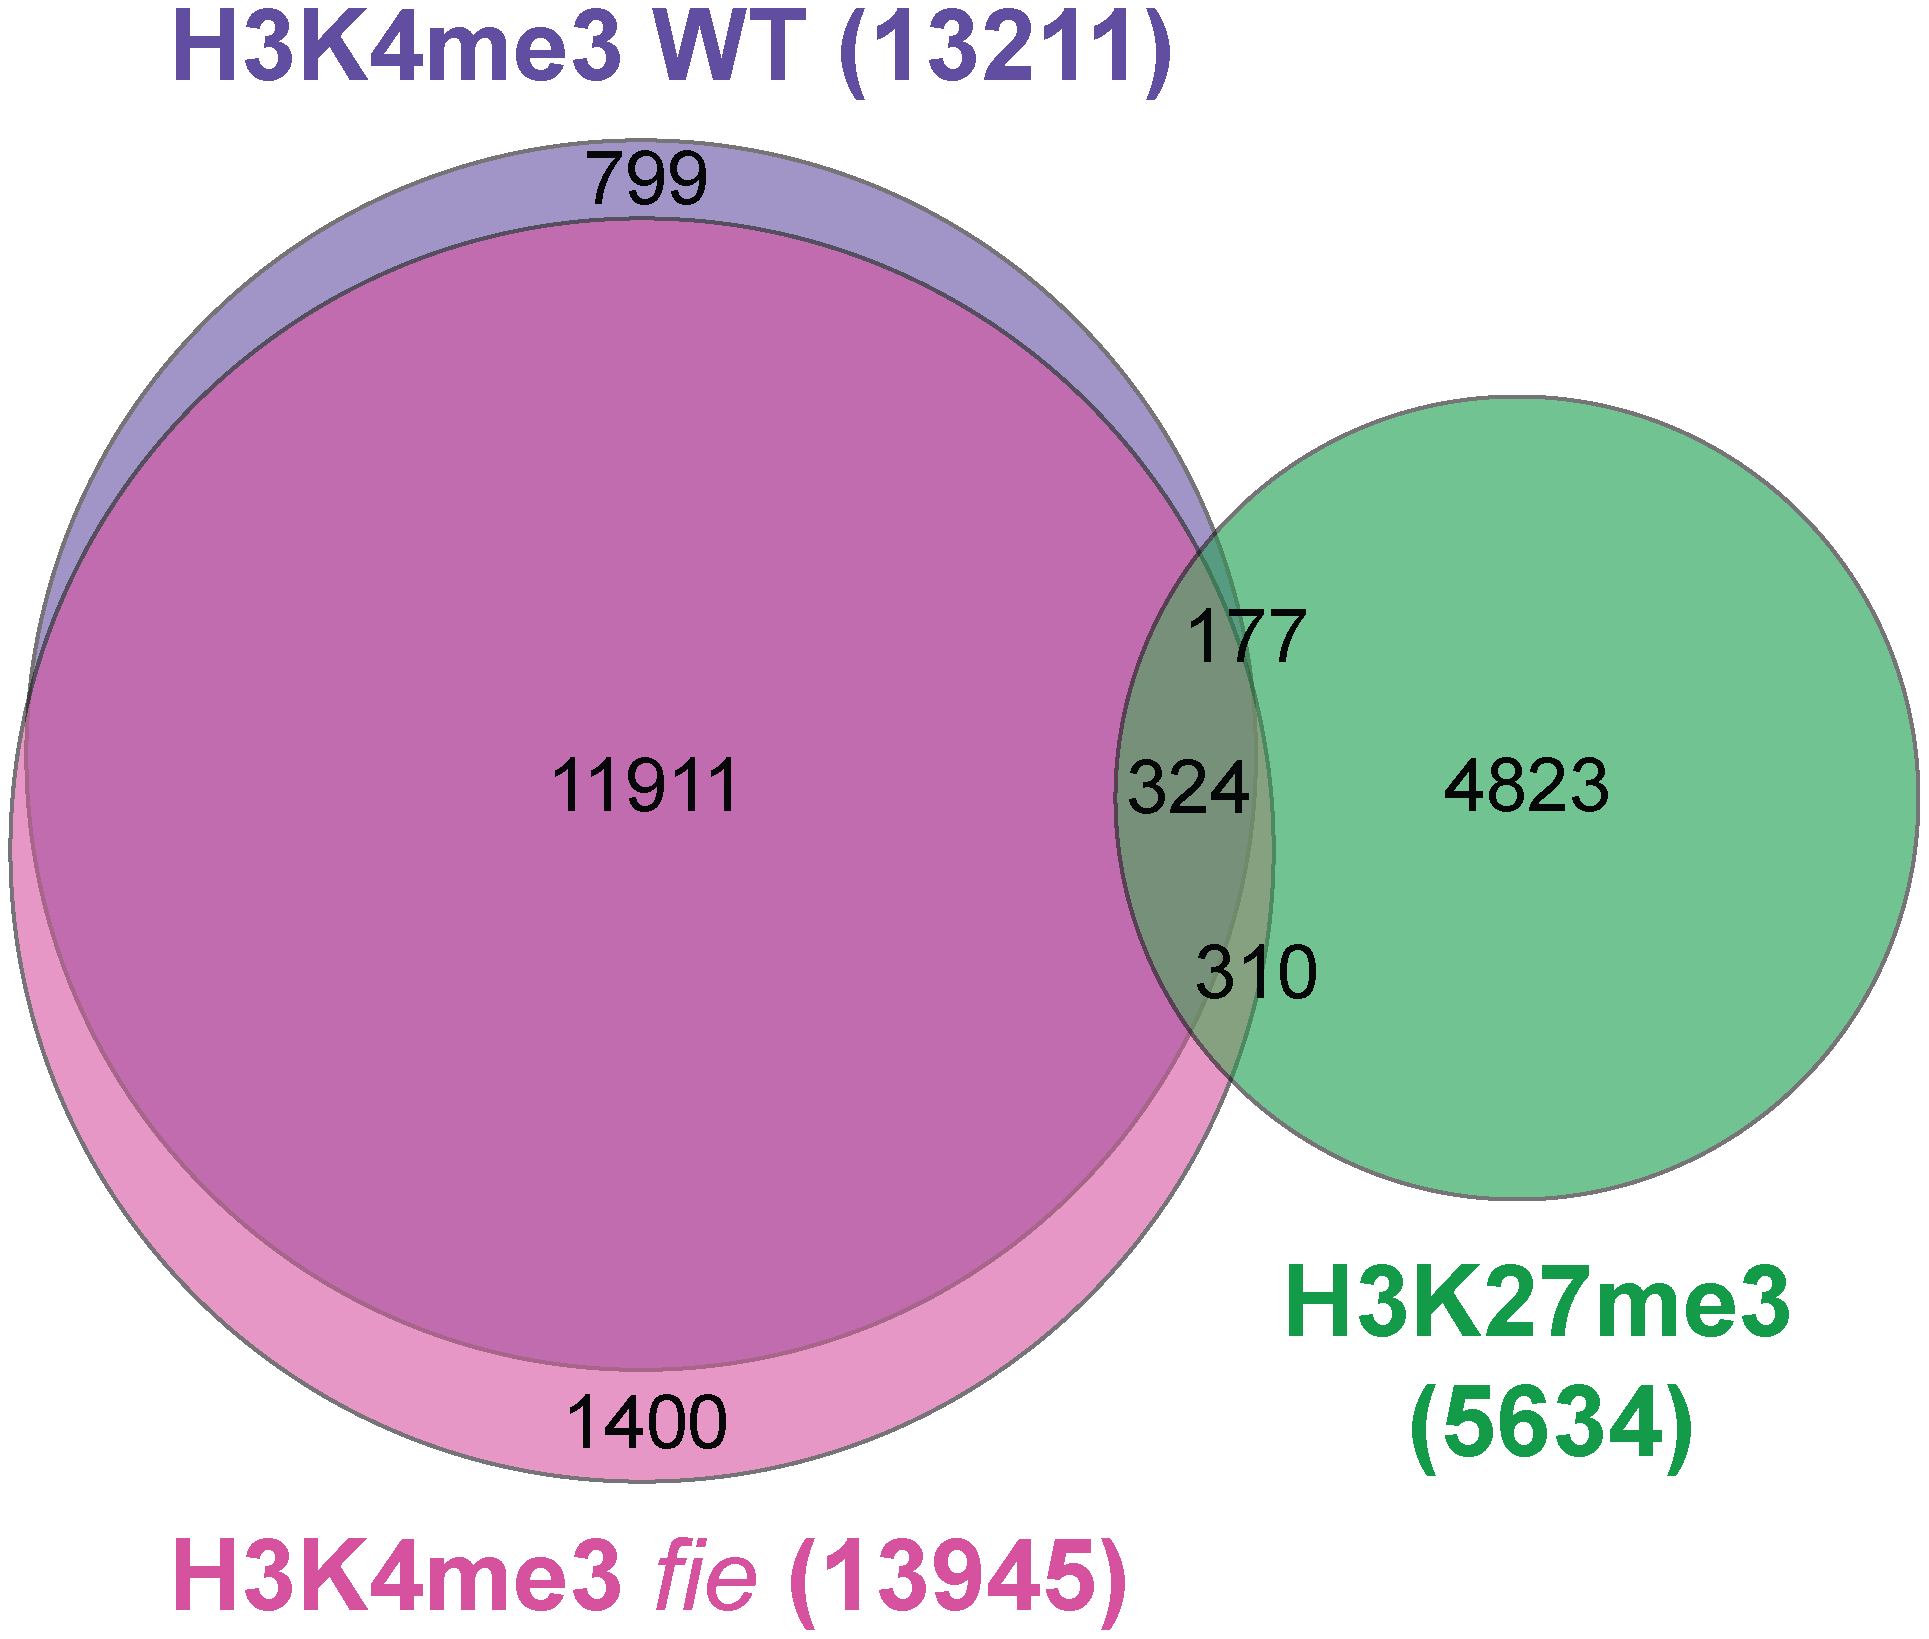 The set of H3K4 trimethylated genes changes only marginally between wild type and <i>fie</i> and is under-represented among H3K27me3 targets.